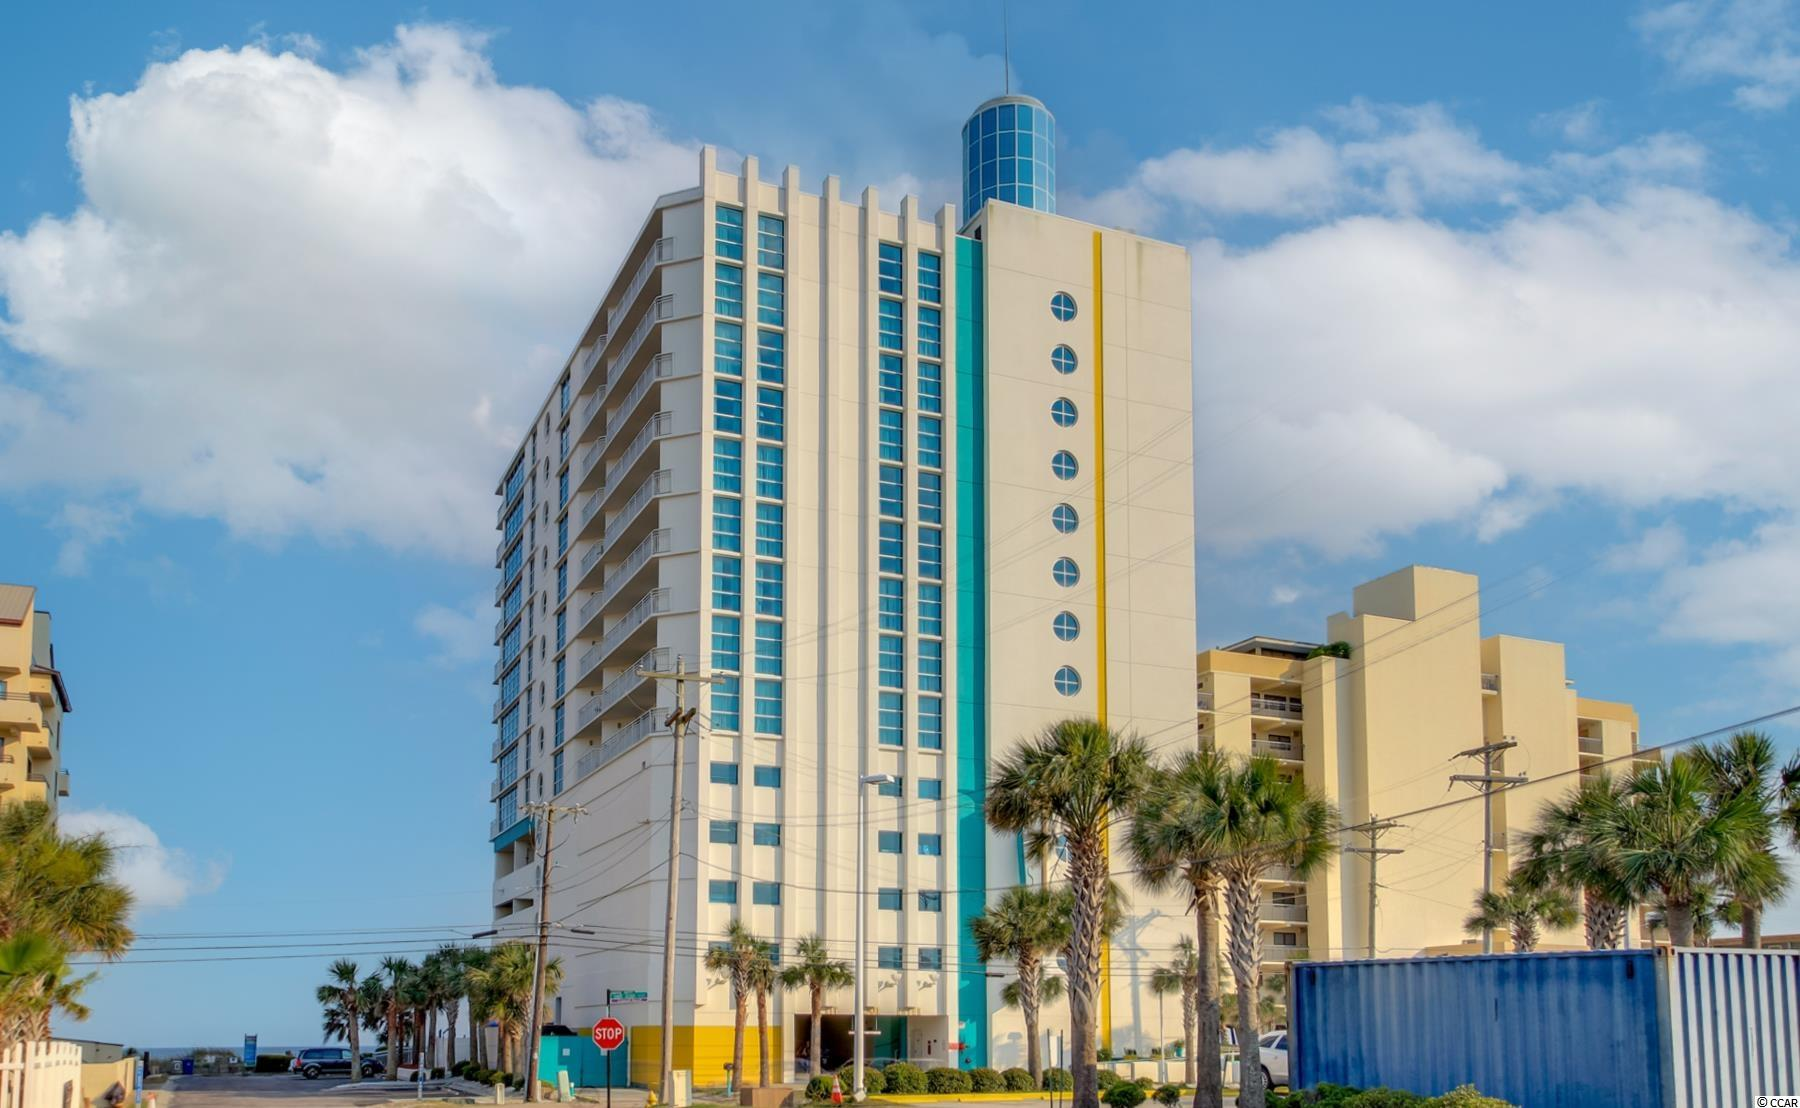 You don't want to miss this one! Gorgeous views from this two bedroom, two bathroom unit in Seaside Inn Resort located in North Myrtle Beach. Two spacious bedrooms, accompany an updated kitchen with a large living area that overlooks the Atlantic Ocean! The resort has great amenities such as lazy river, indoor and outdoor pool, gym, and more! This is perfect for a secondary home, investment property or even a primary home. Don't miss out and schedule your showing today!